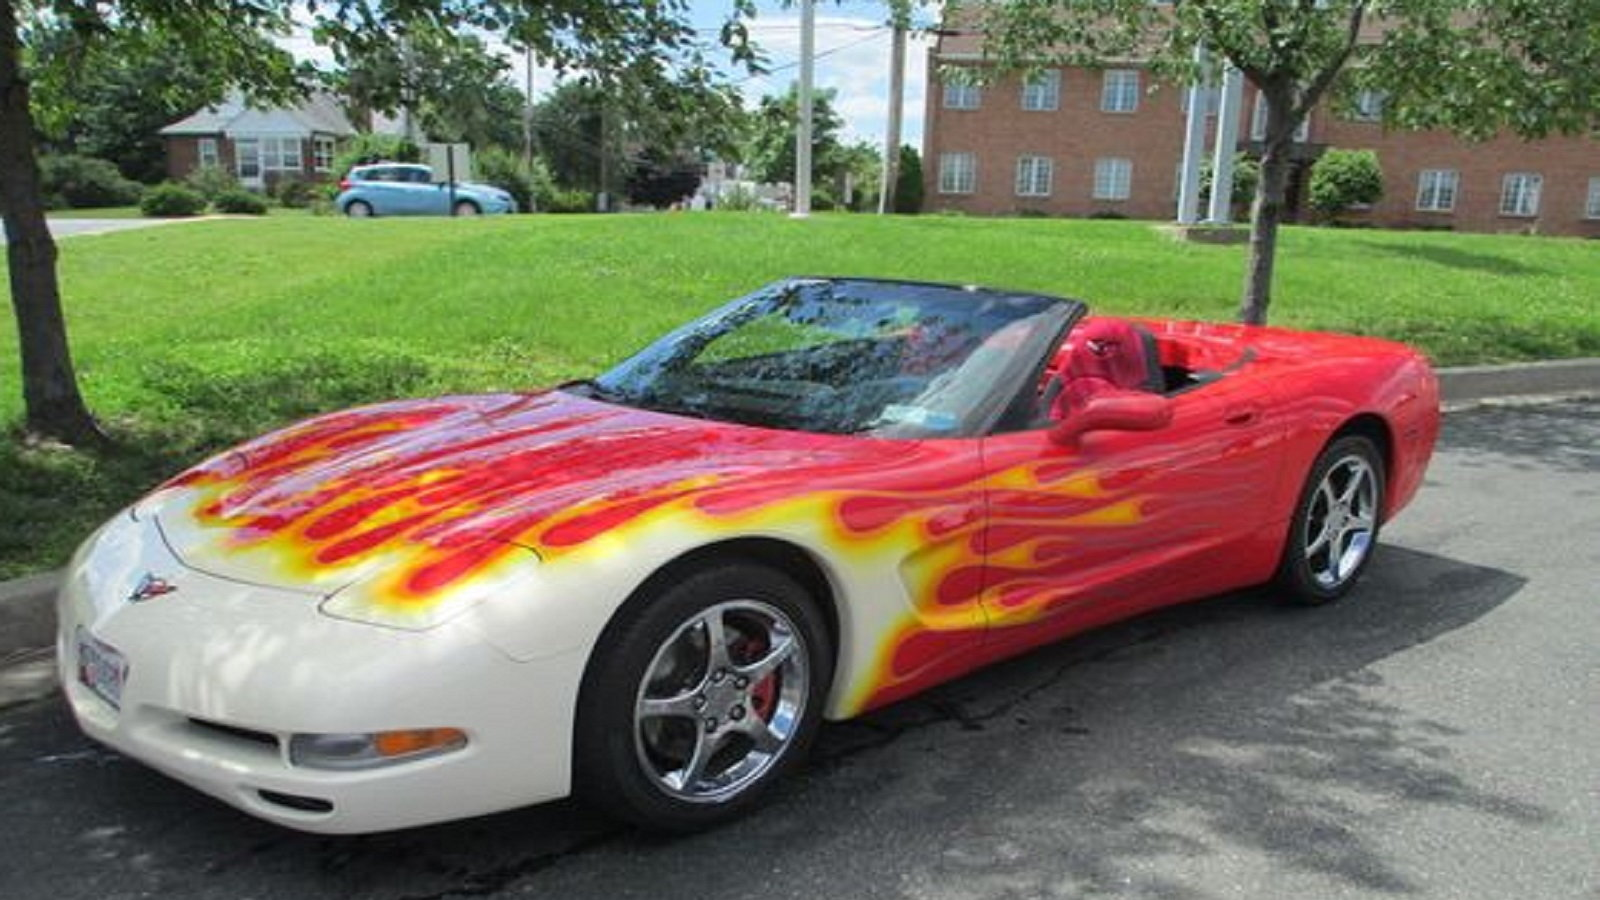 Burning up the road